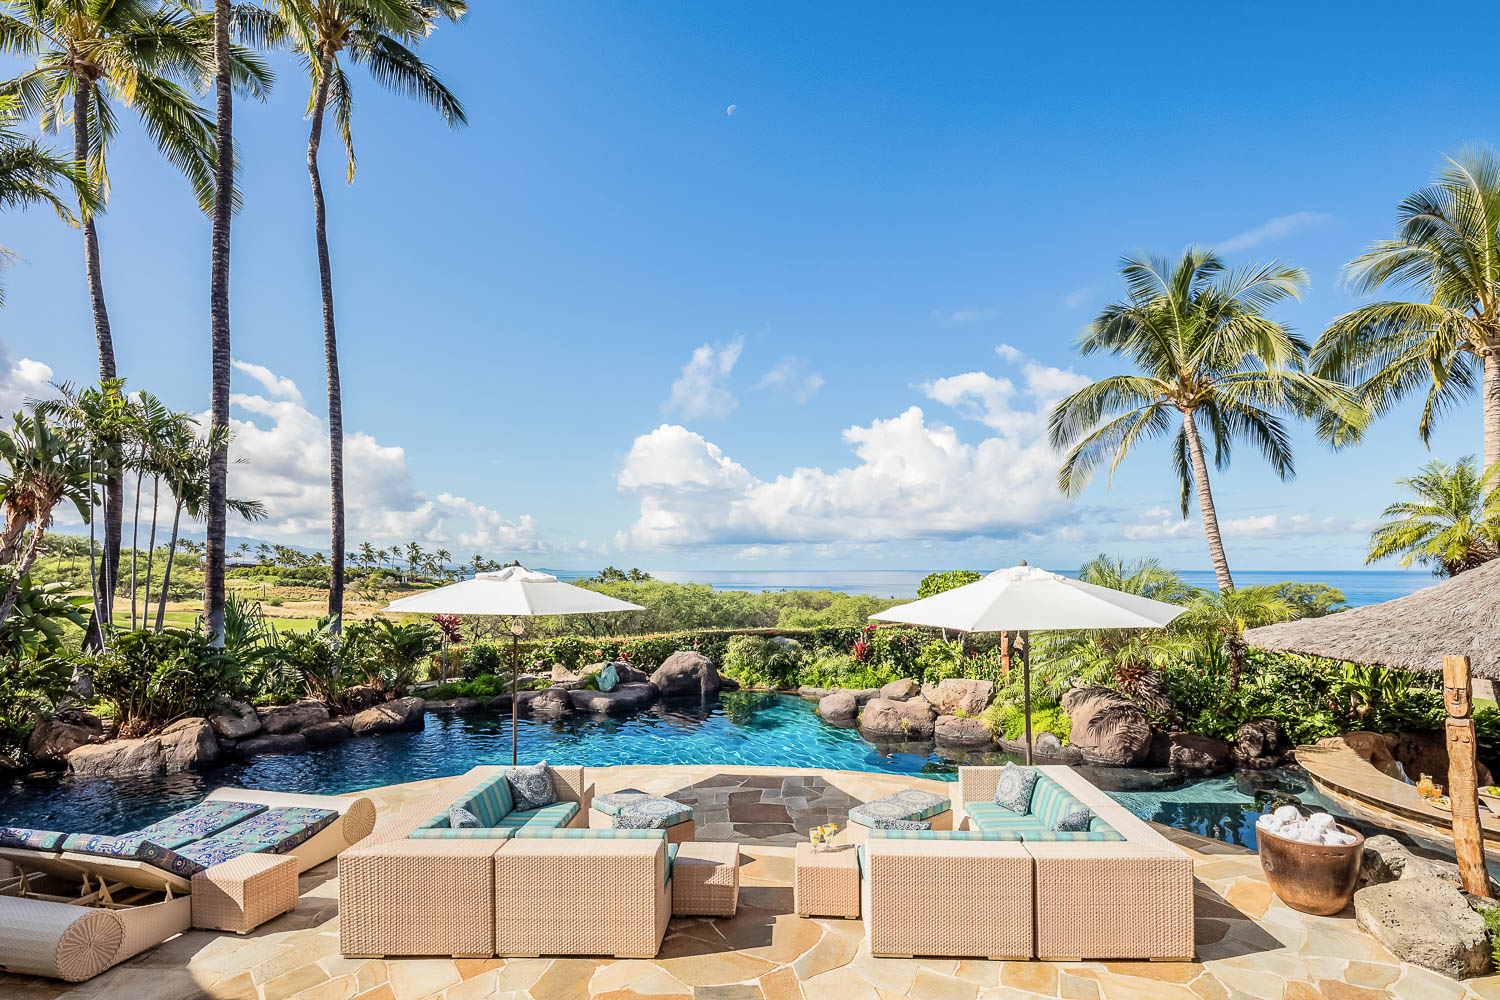 Apartment Fairway North 5 Bedroom 5 Bath Mauna Kea Resort  Big Island  Hawaii photo 20362459